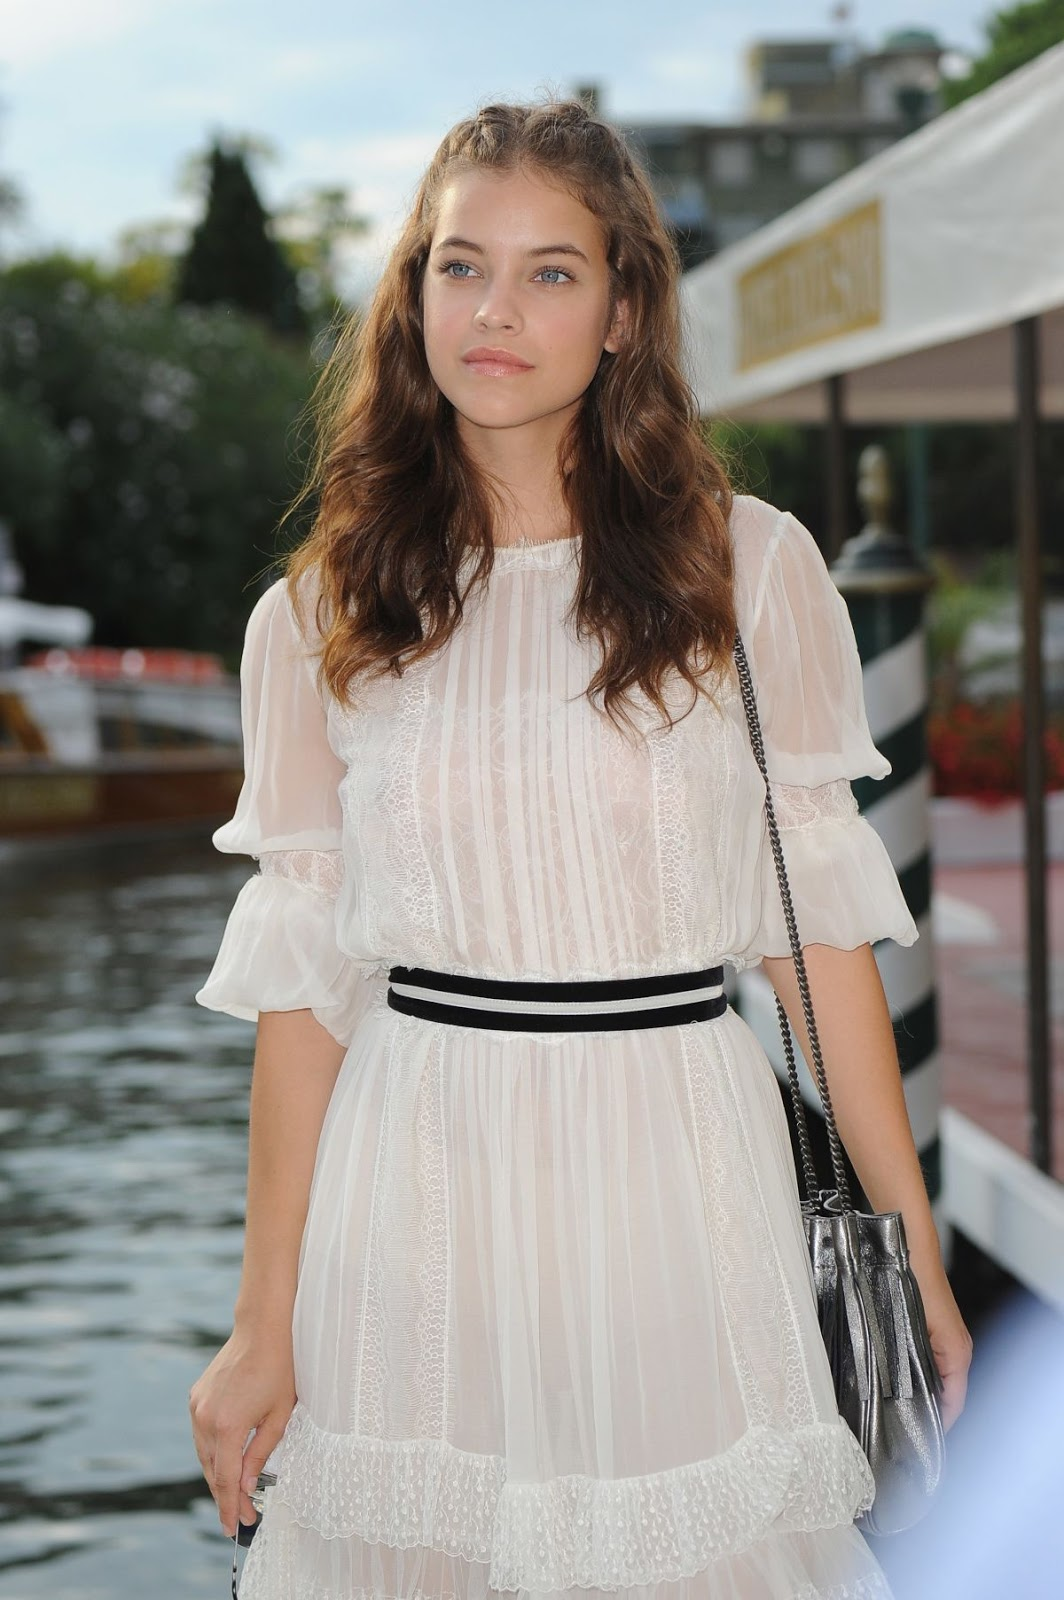 Hot & Sexy Model Barbara Palvin Arrives At Venice Film Festival In Venice - HD Photos